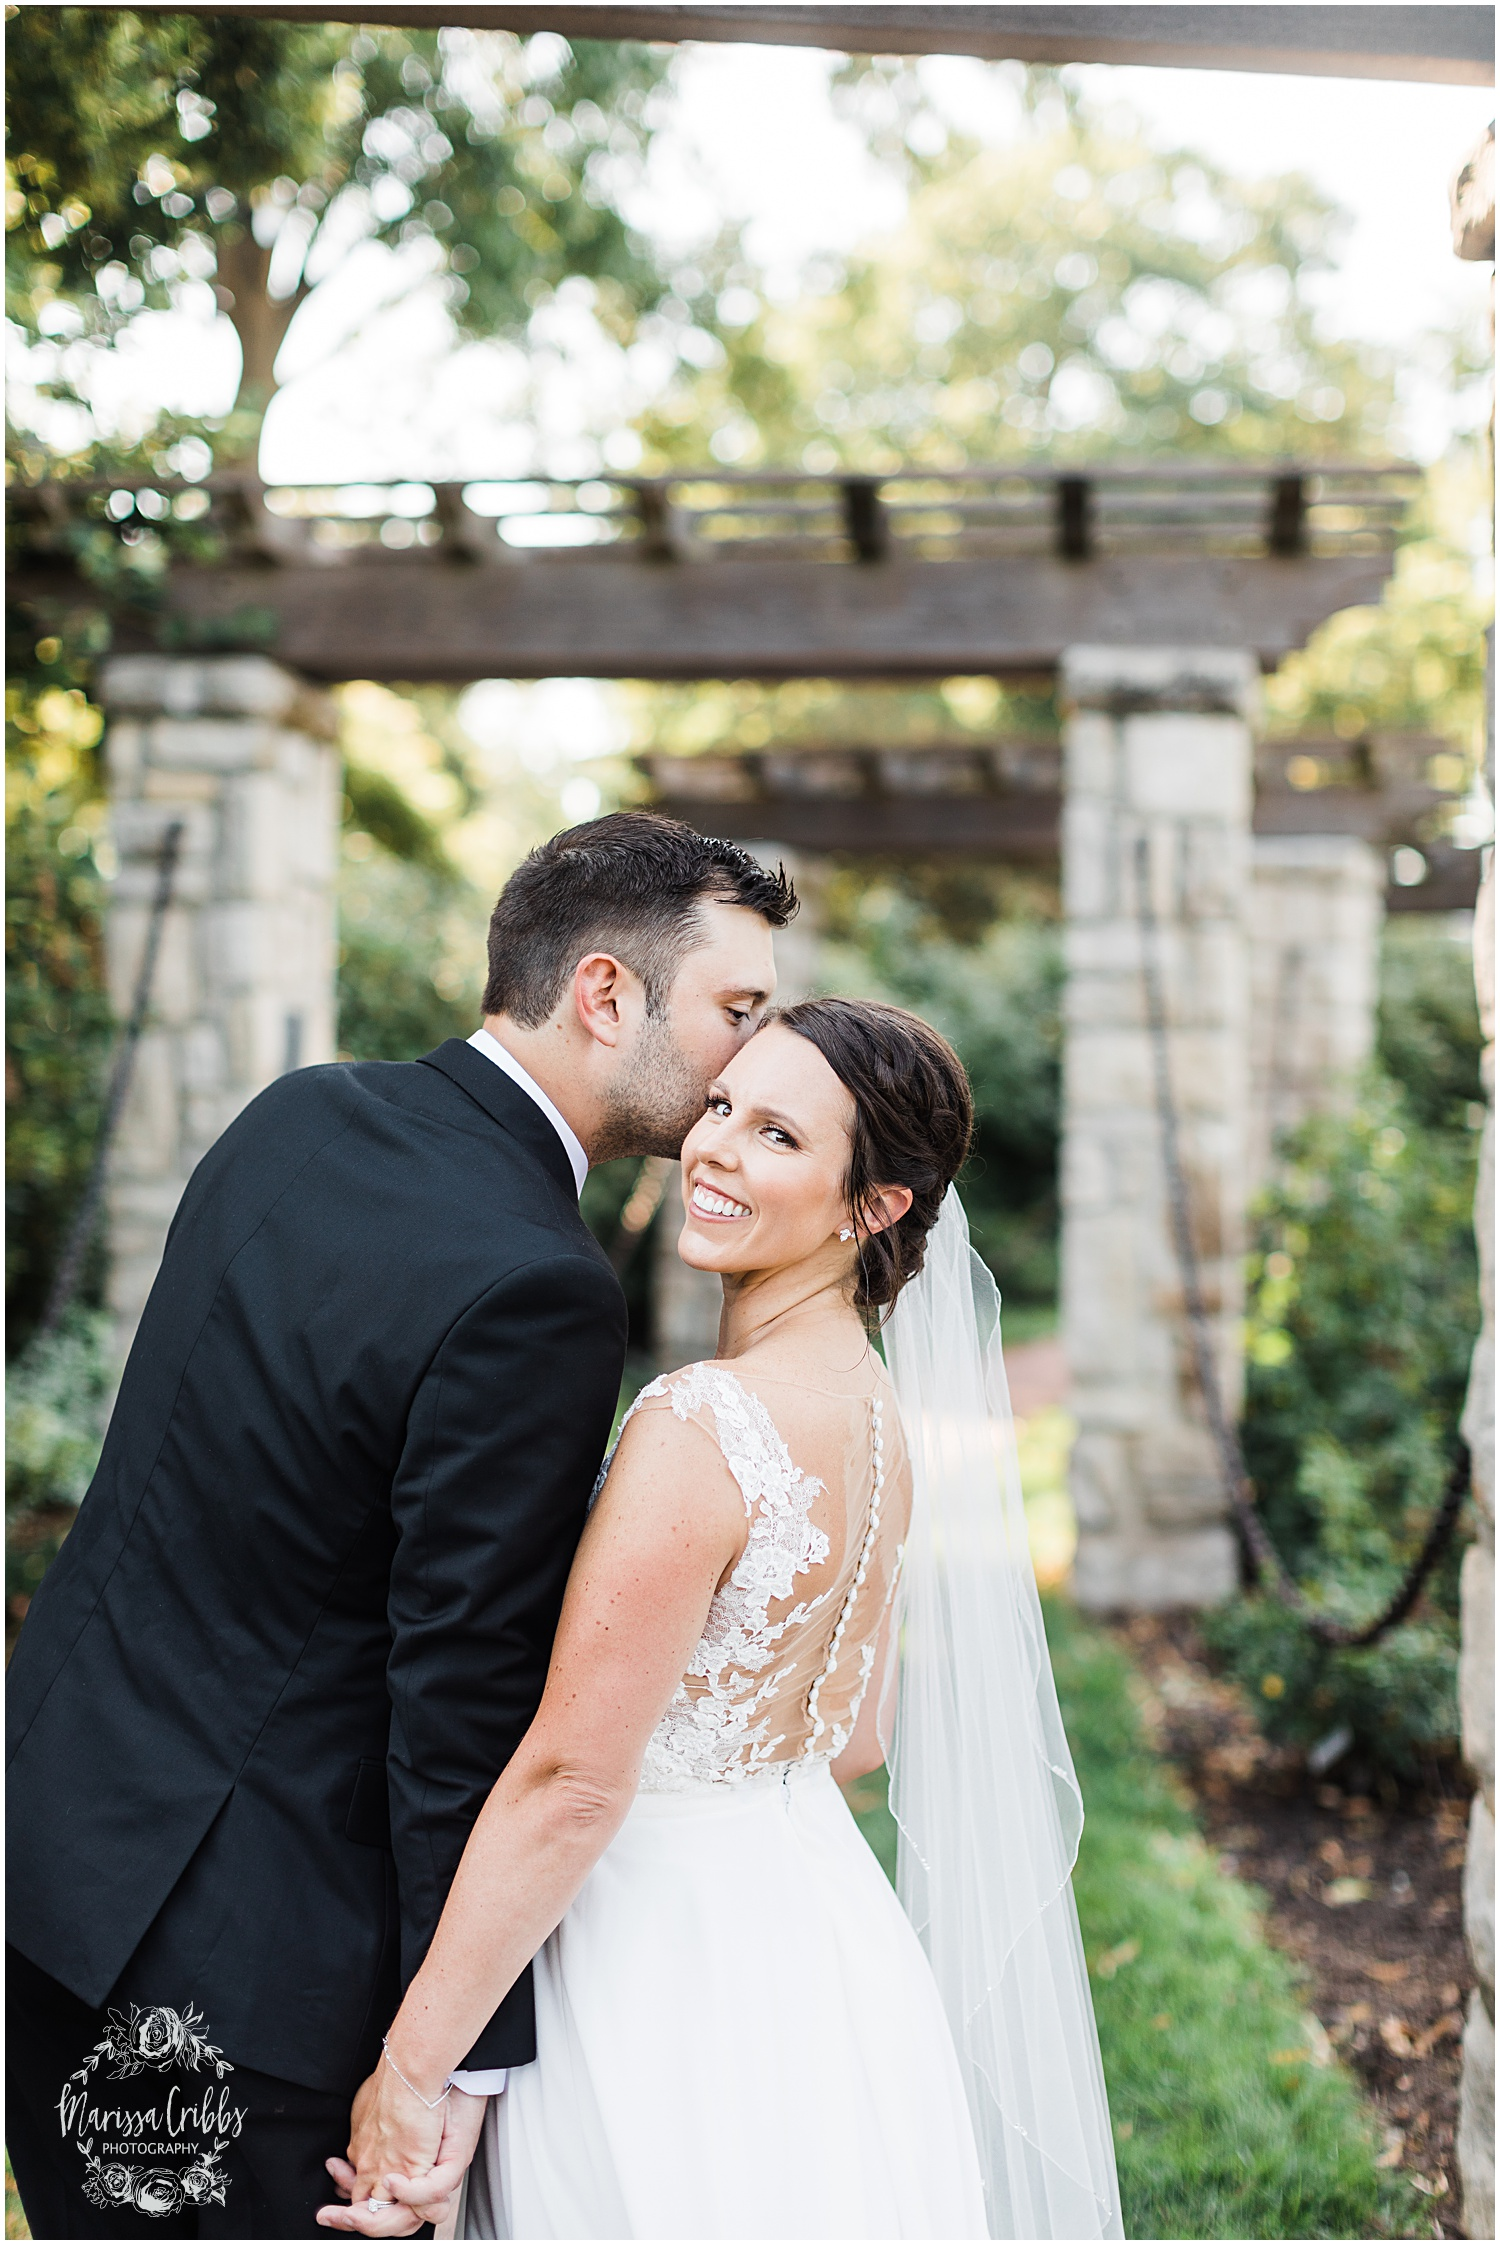 KELLY & MITCH MARRIED BLOG | MARISSA CRIBBS PHOTOGRAPHY | THE EVERLY EVENT SPACE_8875.jpg